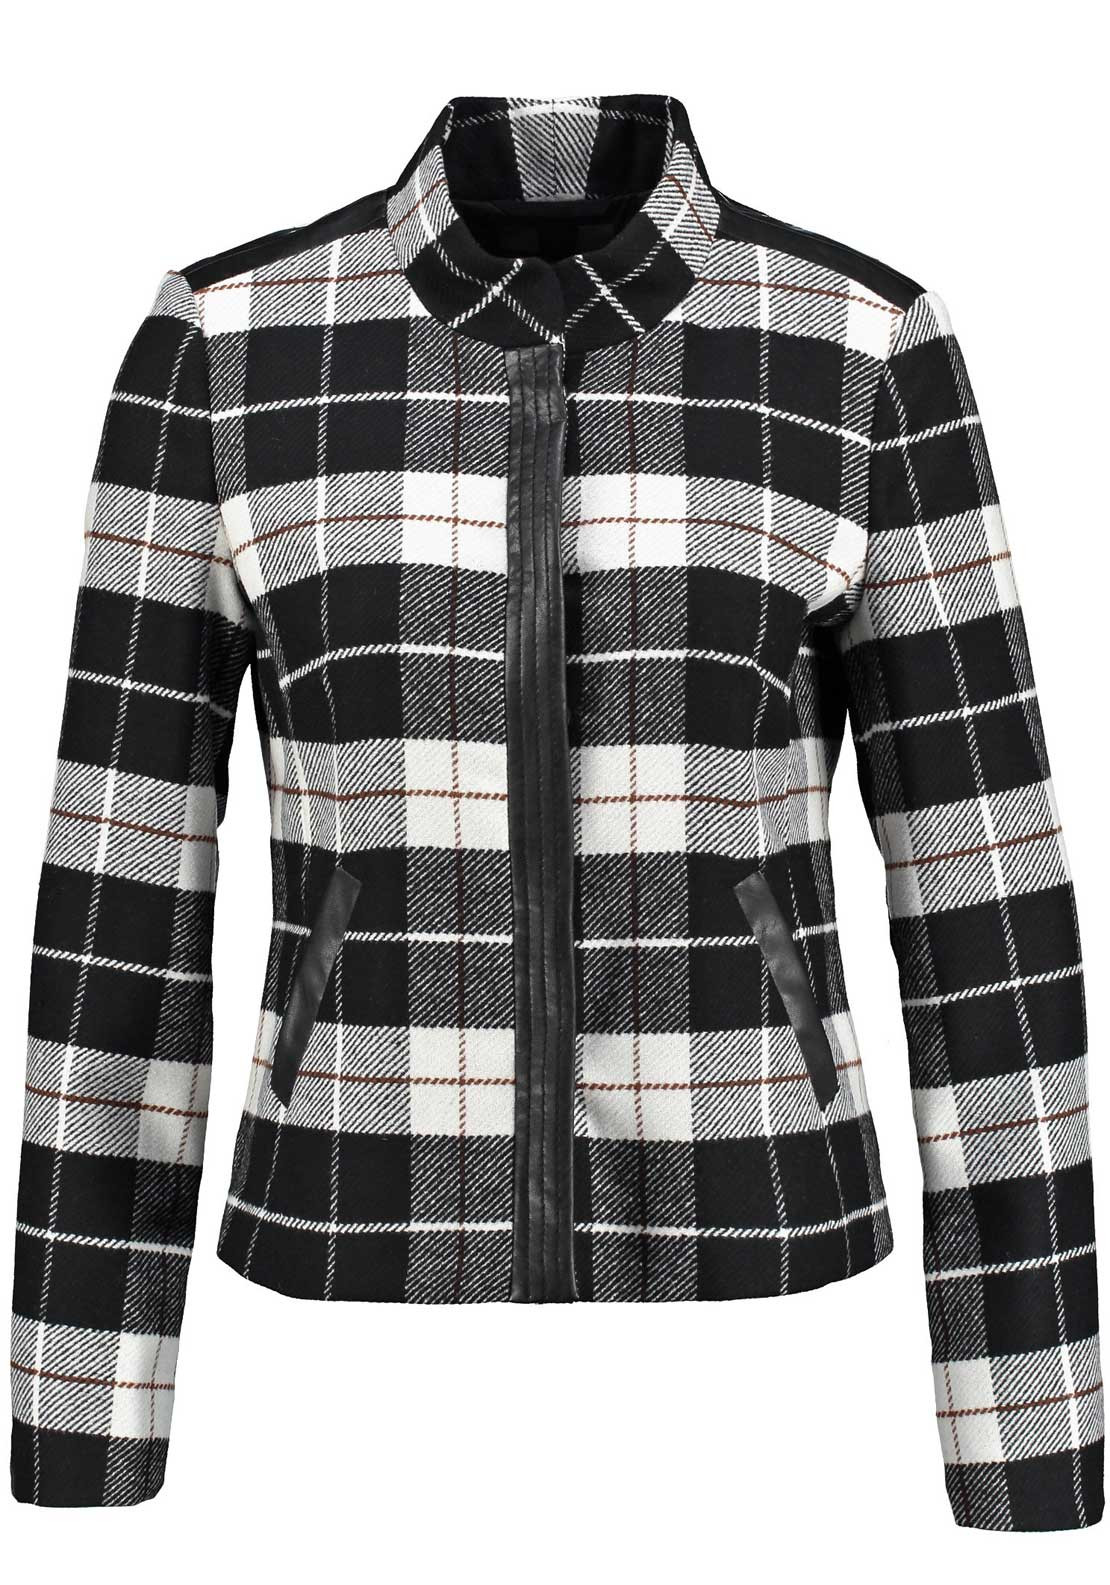 Gerry Weber Checked Wool Rich Jacket, Black and White